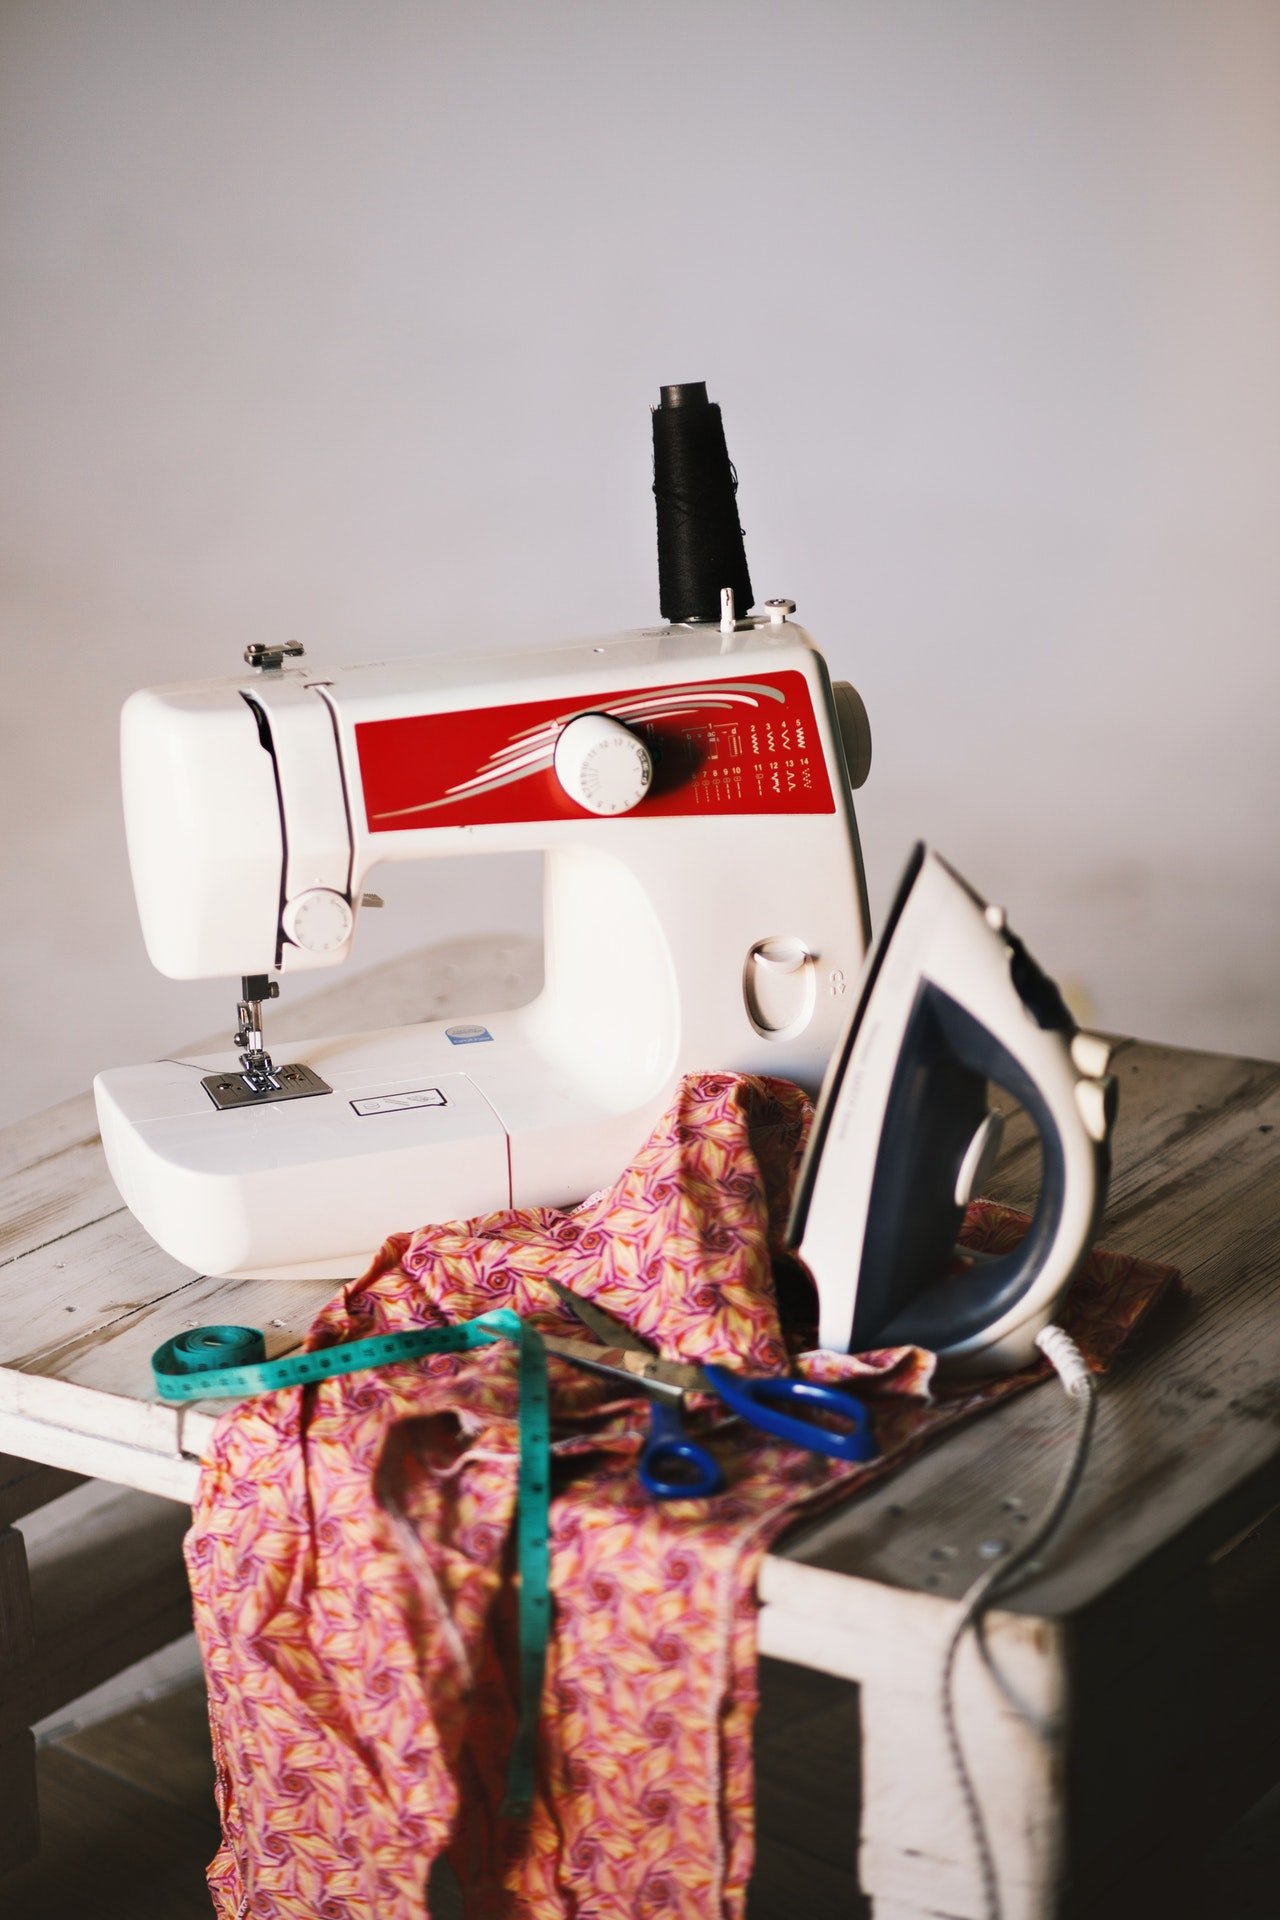 Sewing machine oil substitute: what can and can't you use?